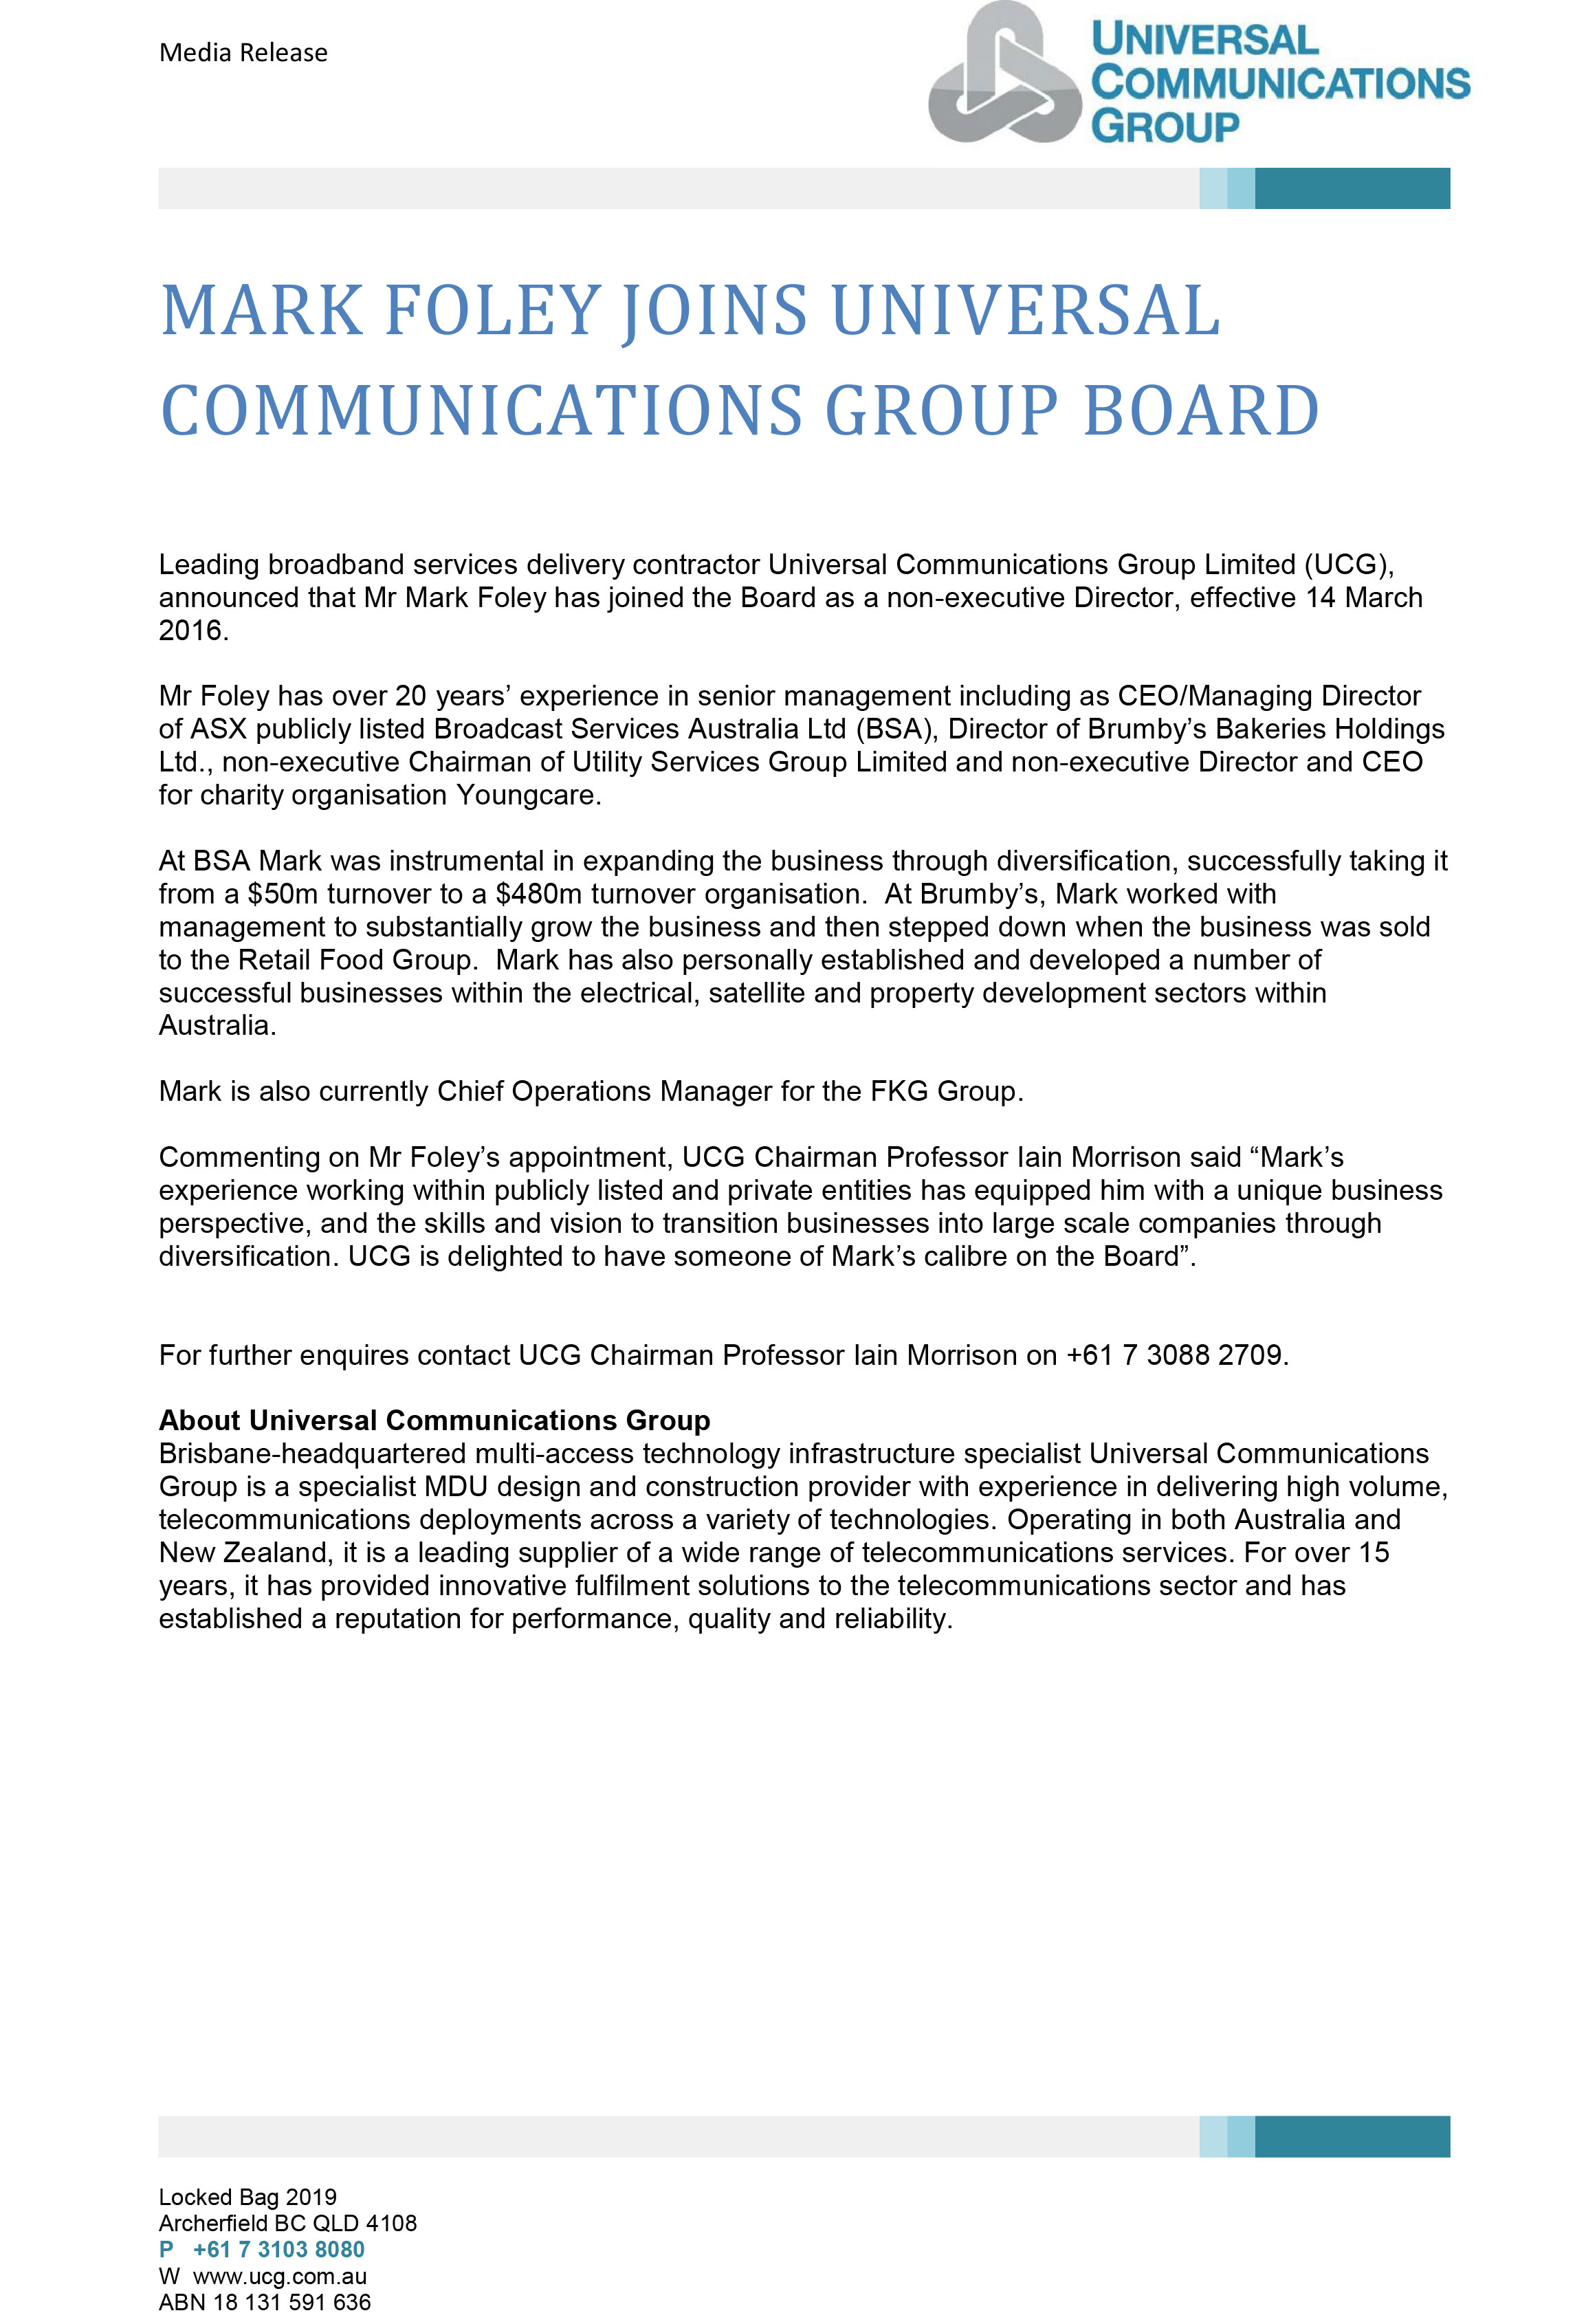 UCG-Media-Release---Mark-Foley